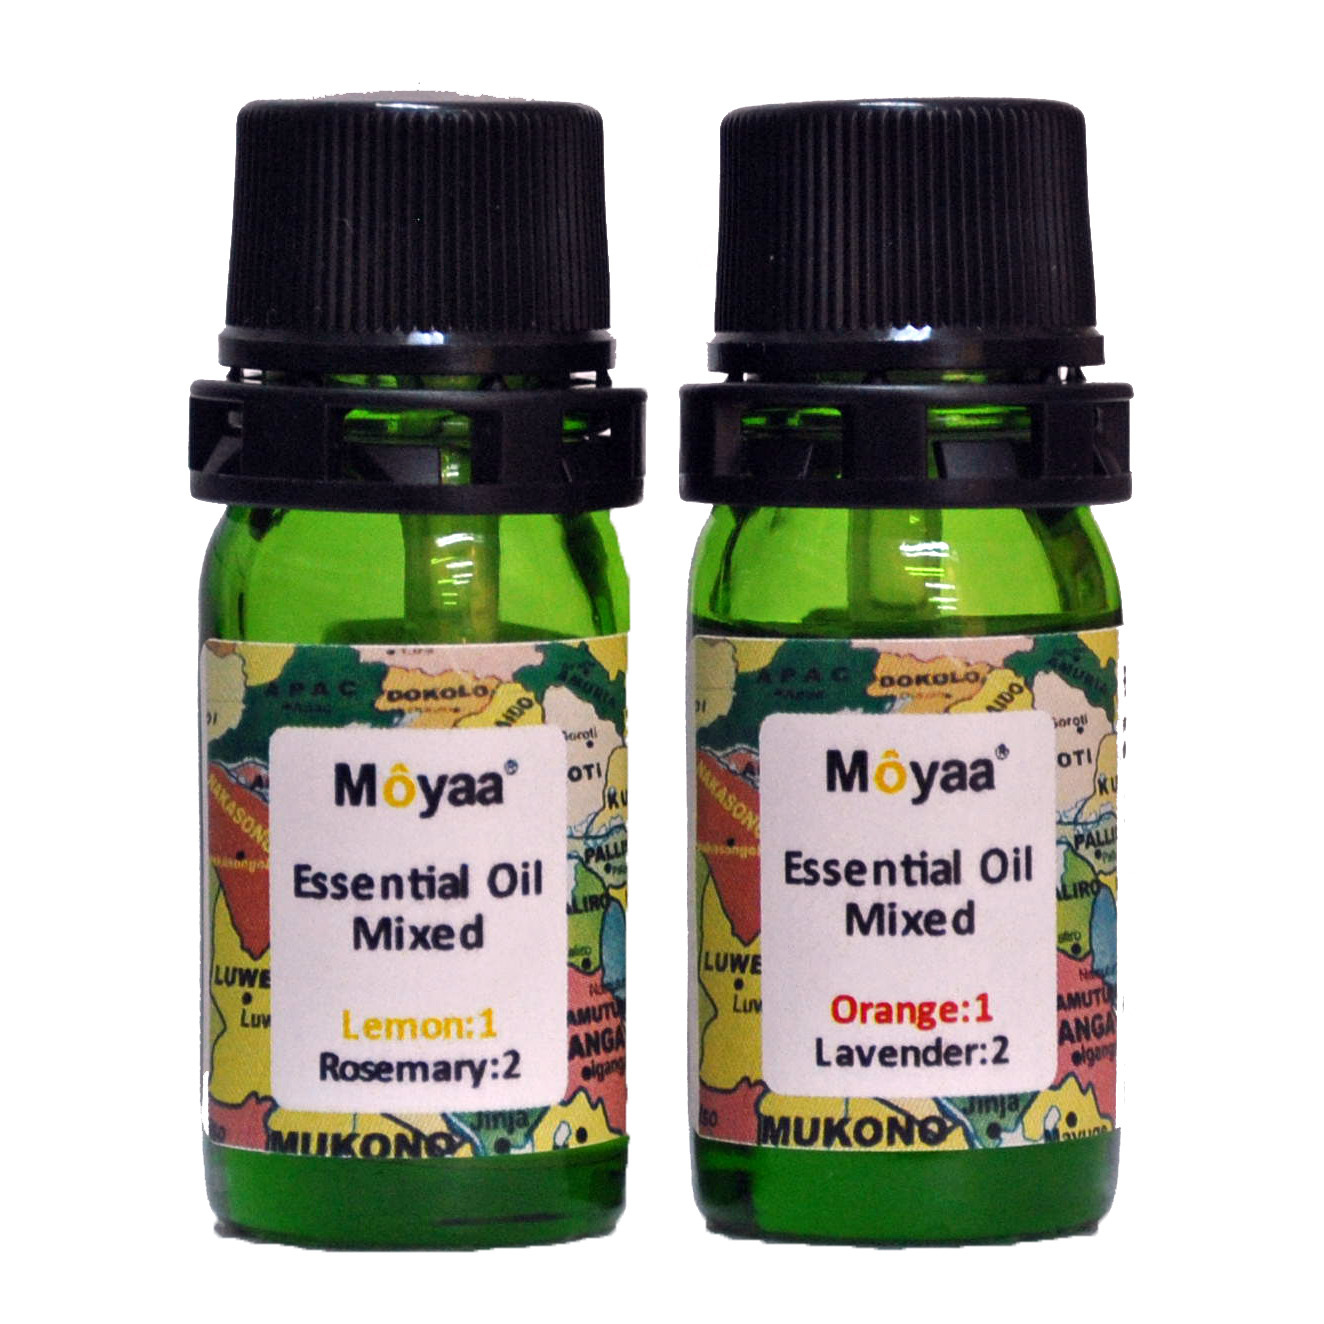 Moyaa Essential Oil Mixed (Set of 2 bottles) </br>モーヤ・エッセンシャルオイル・ミックス(2本セット)